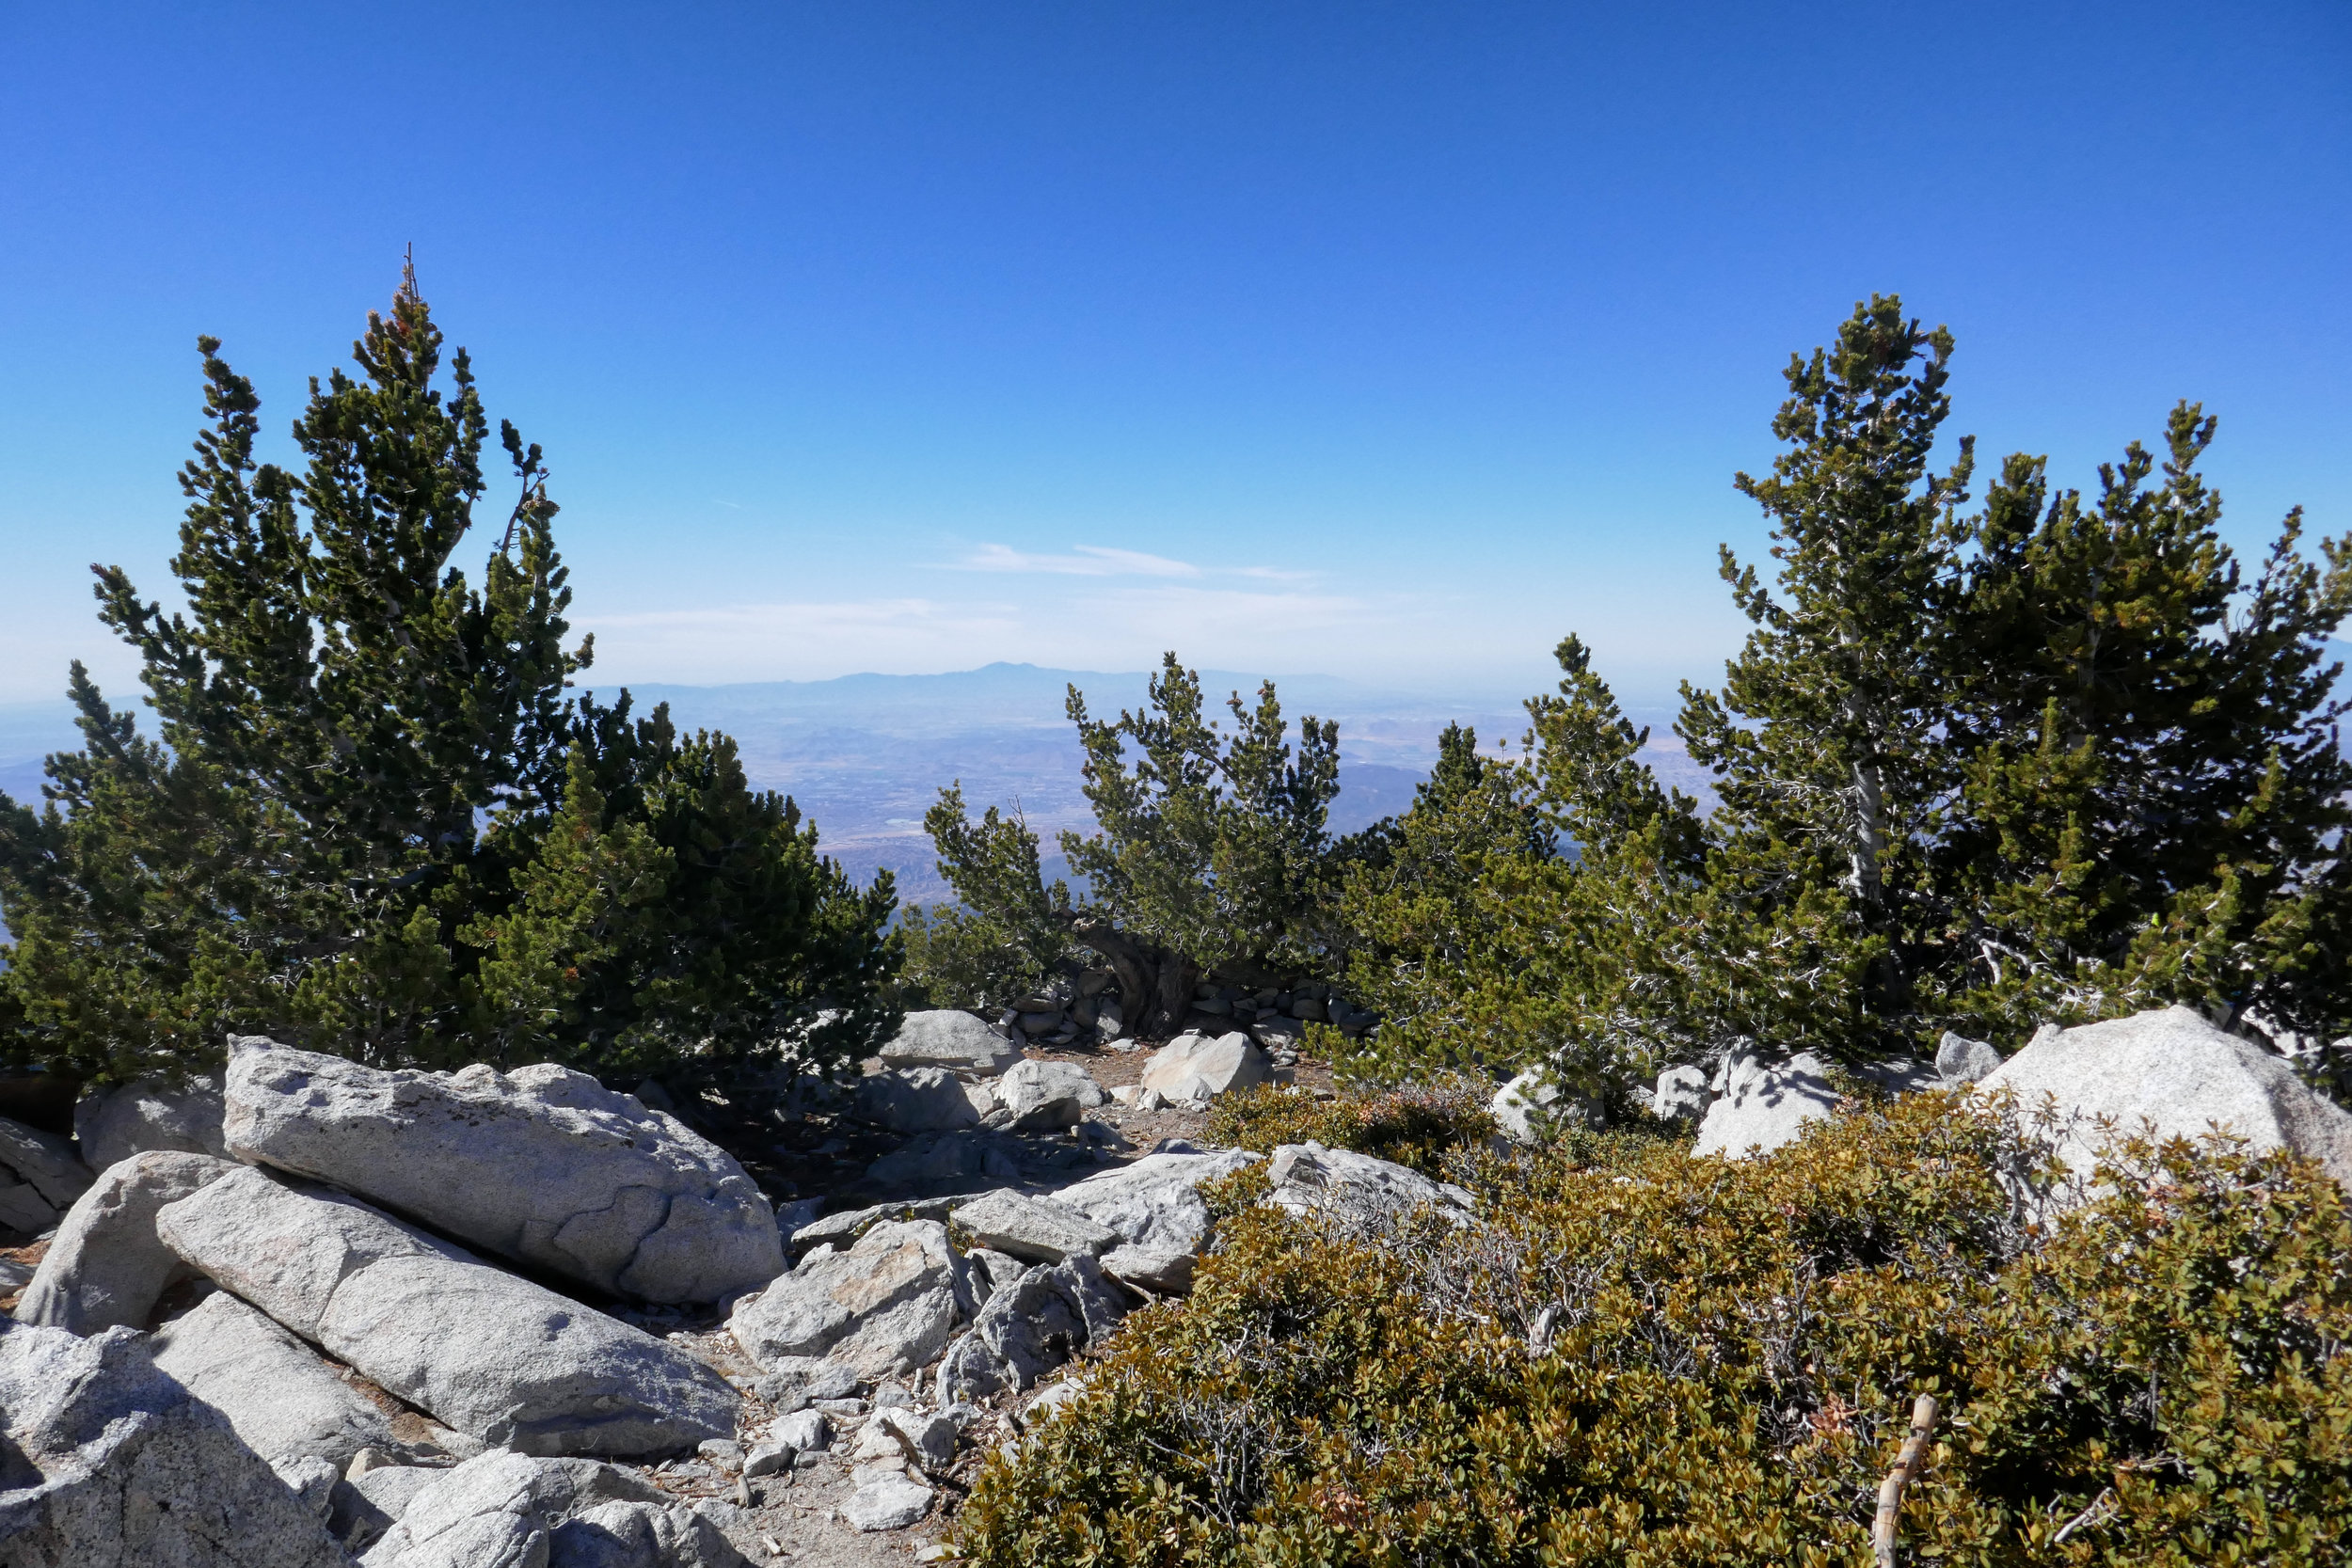 View from the top of Mount San Jacinto.